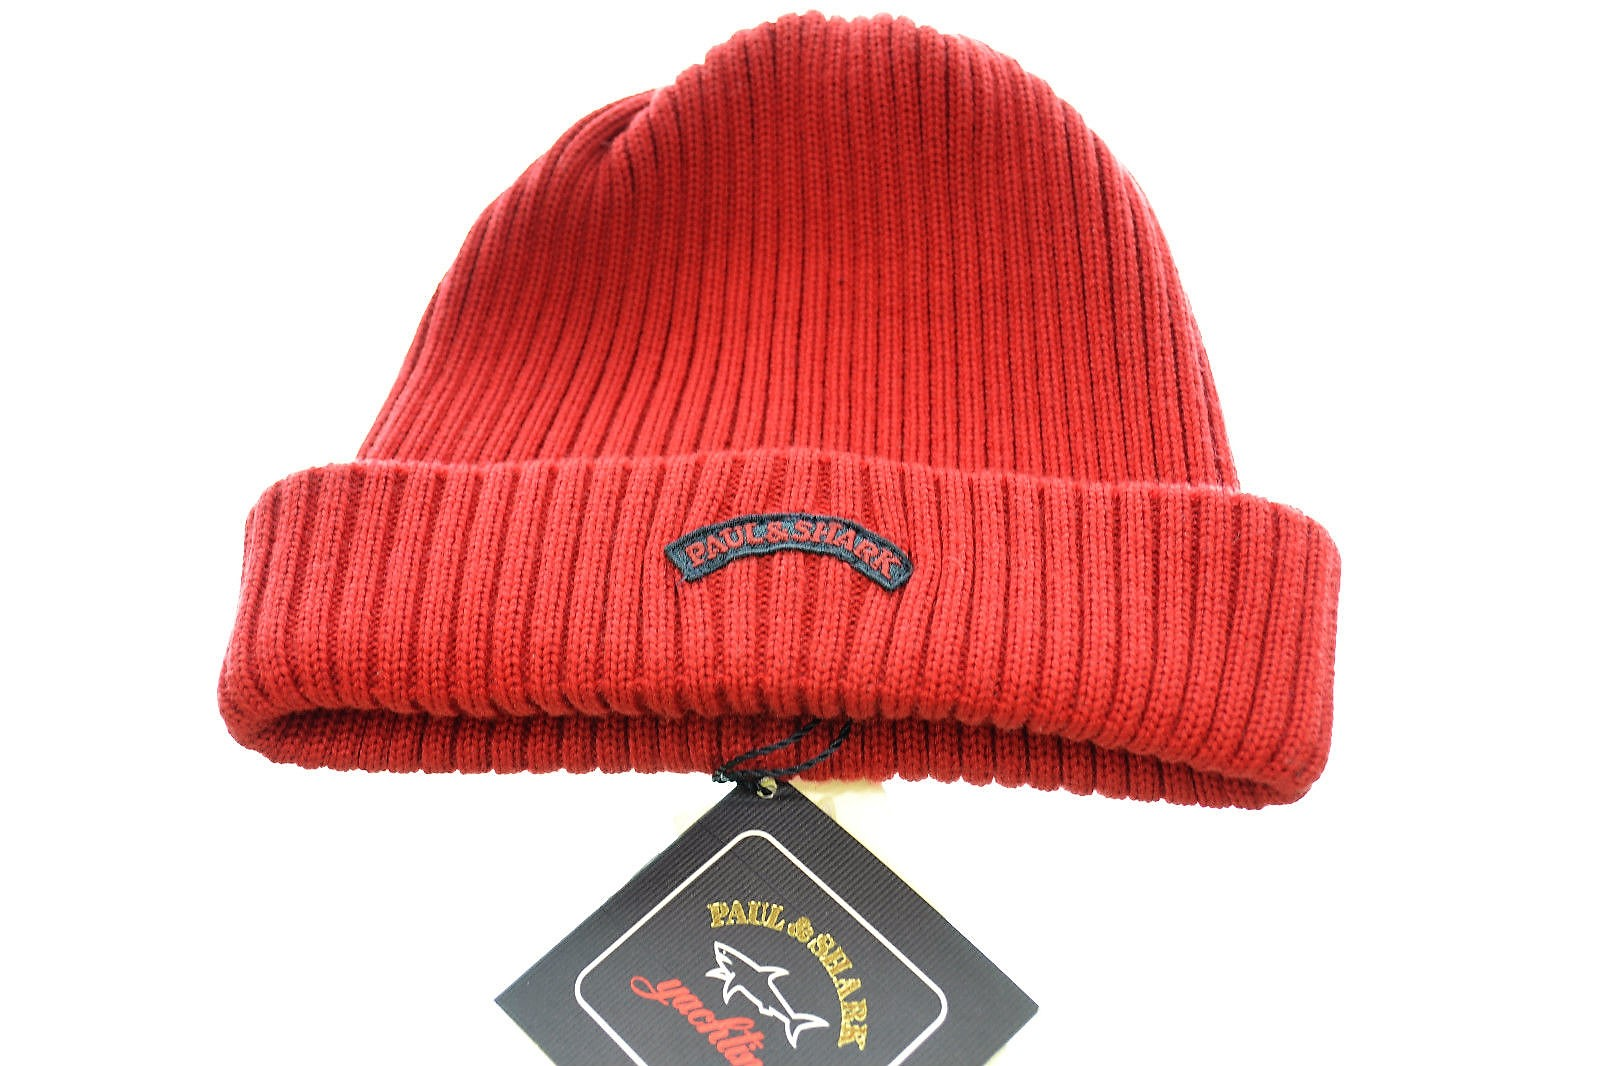 PAUL  SHARK YACHTING cappello lana COP983 rosso